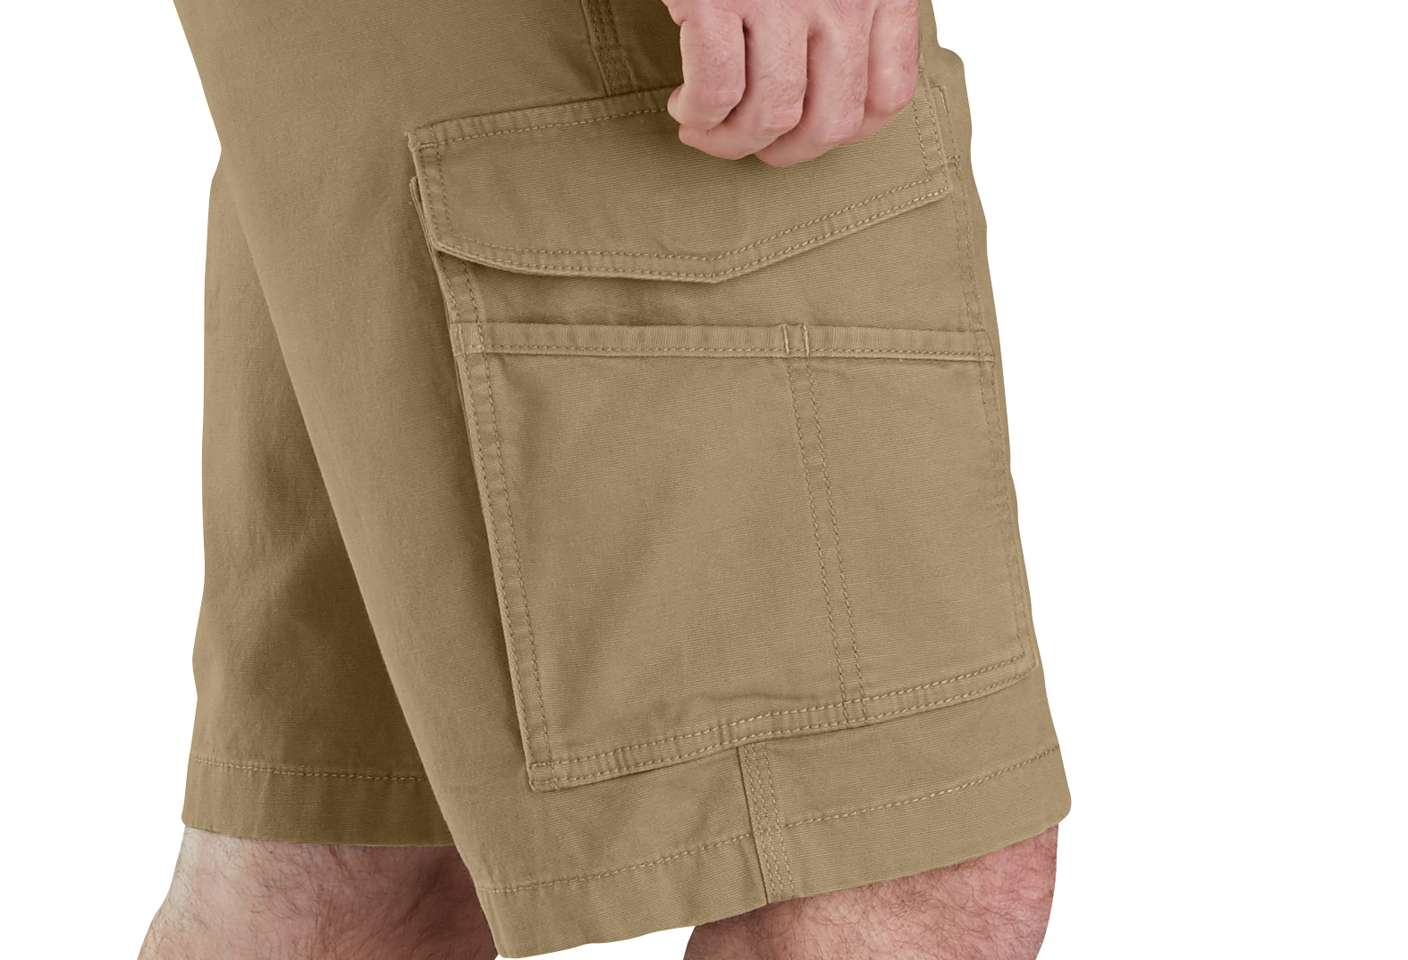 Utility and cargo pockets hold small tools